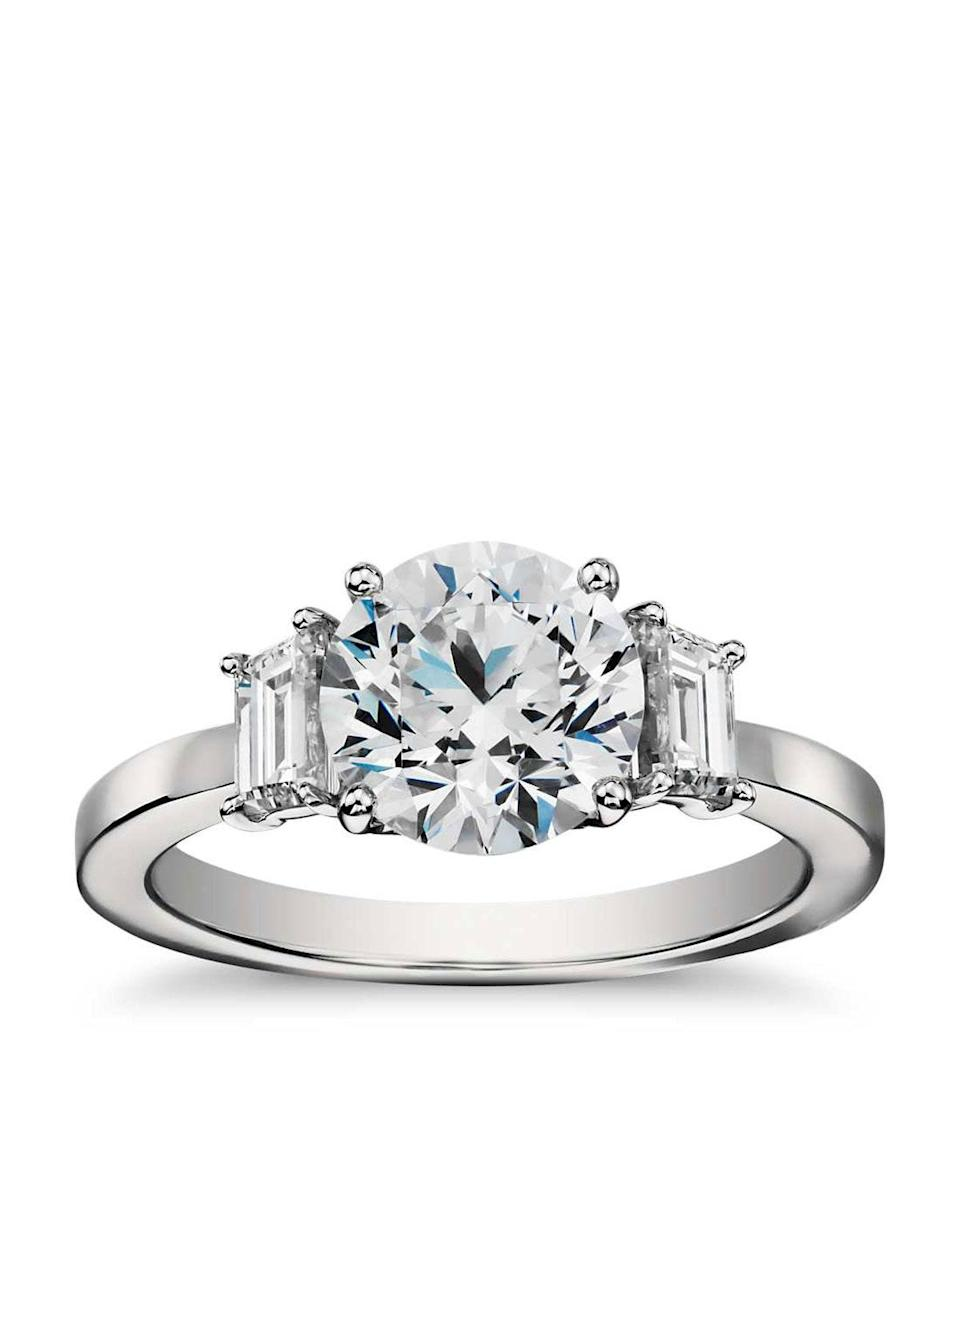 """Trapezoid stones can come in a variety of settings; the most popular are front and center by themselves (a.k.a. solitaire), or as part of a trio (à la Meghan Markle's ring). Engagement rings with pavé detailing, specifically, have seen a double-digit growth on Blue Nile. $4990, Blue Nile. <a href=""""https://www.bluenile.com/build-your-own-ring/step-cut-trapeziod-diamond-engagement-ring-platinum_27486?elem=title&track=product"""" rel=""""nofollow noopener"""" target=""""_blank"""" data-ylk=""""slk:Get it now!"""" class=""""link rapid-noclick-resp"""">Get it now!</a>"""